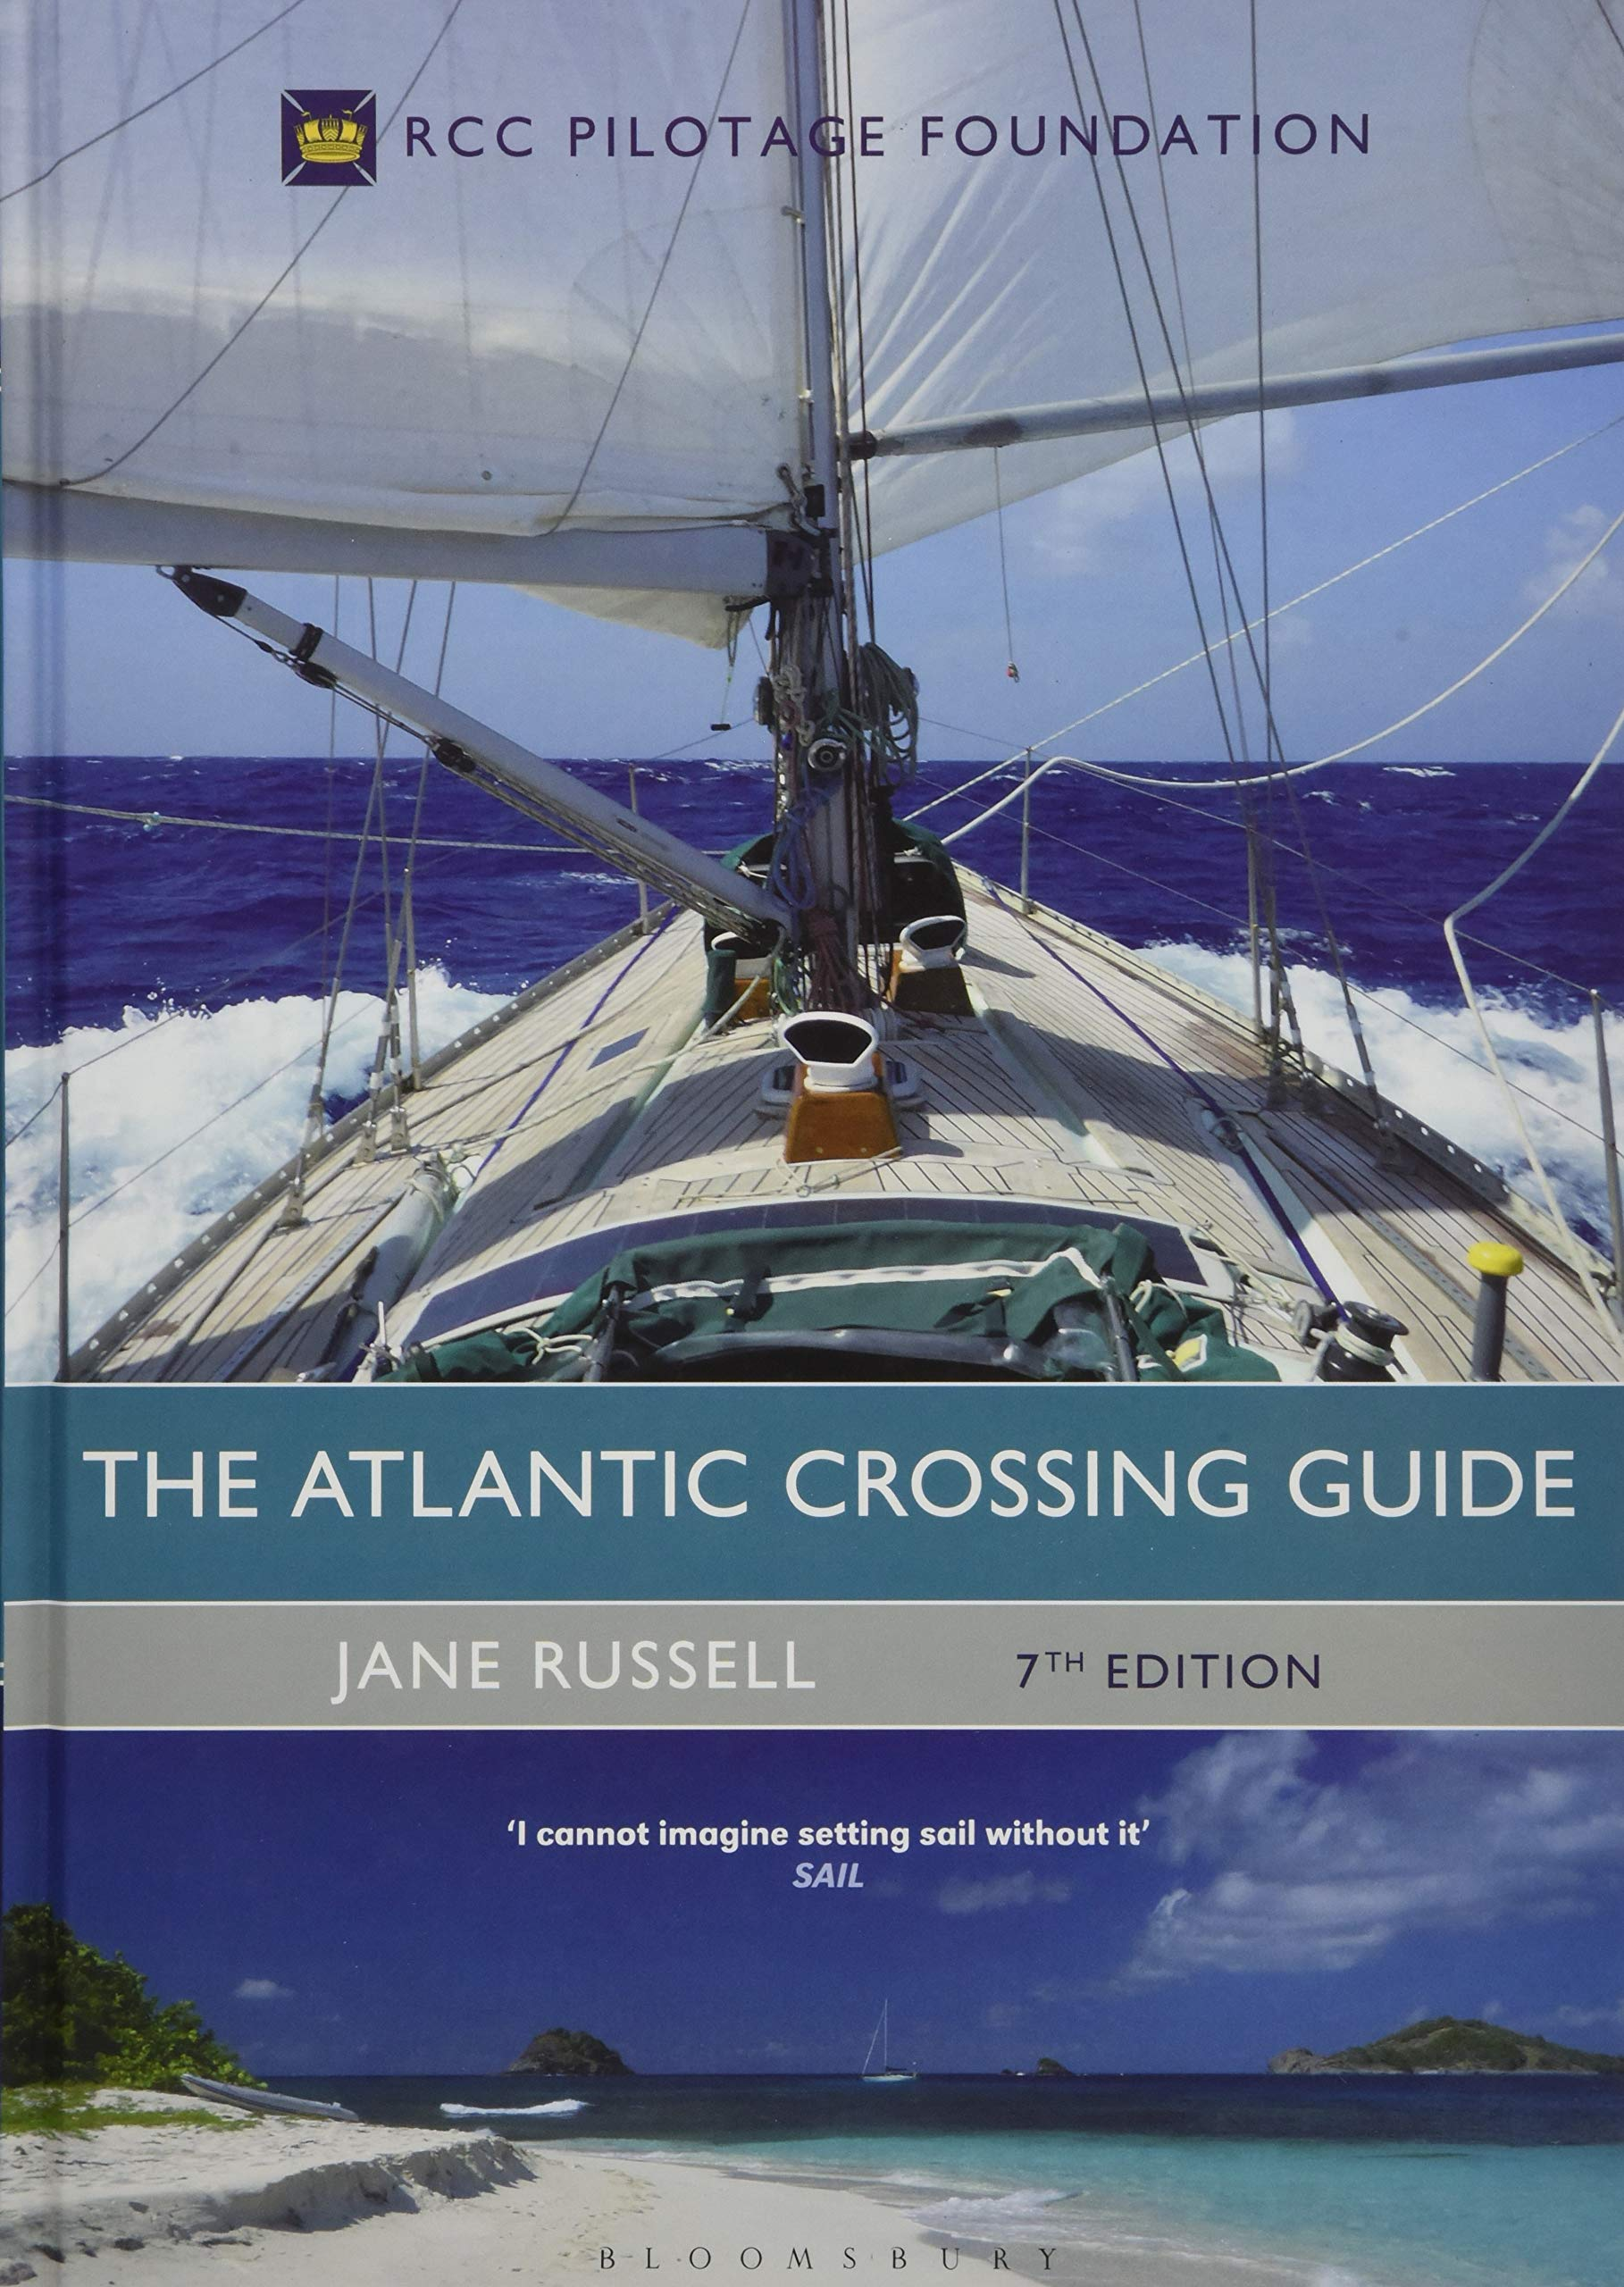 Image OfThe Atlantic Crossing Guide 7th Edition: RCC Pilotage Foundation